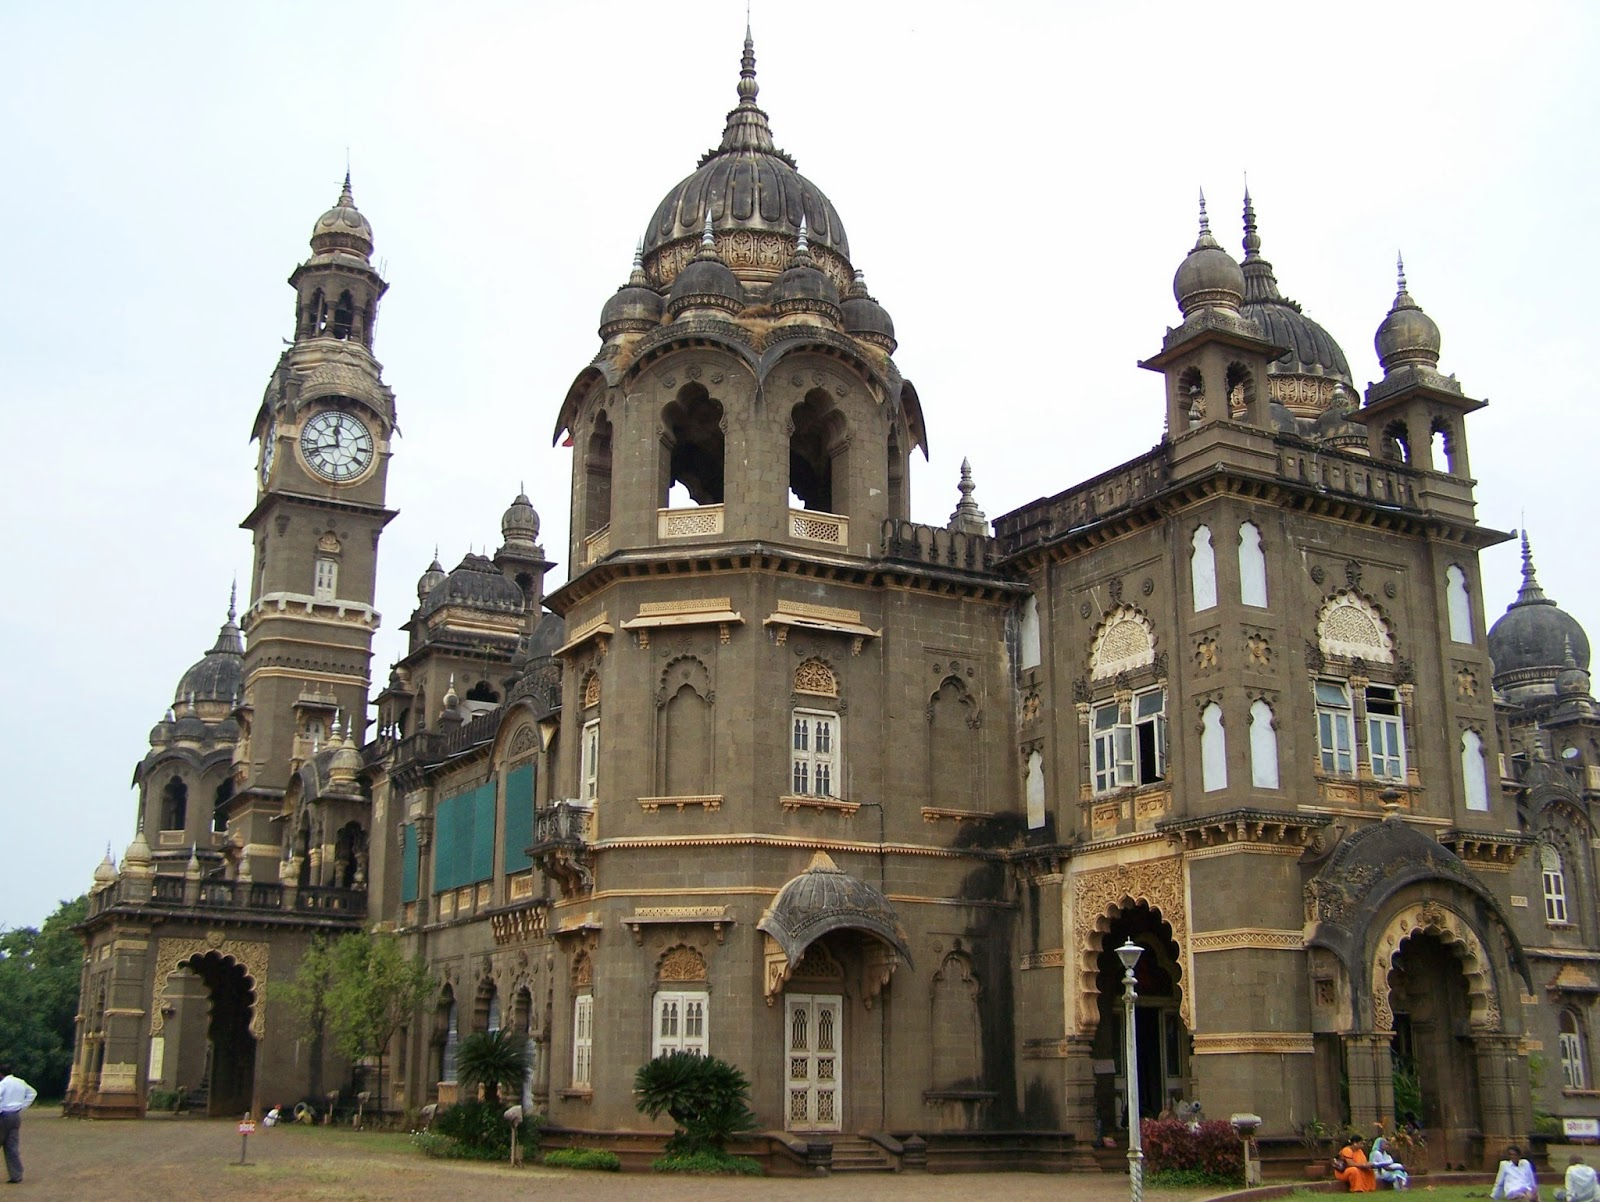 The New Palace of Kolhapur